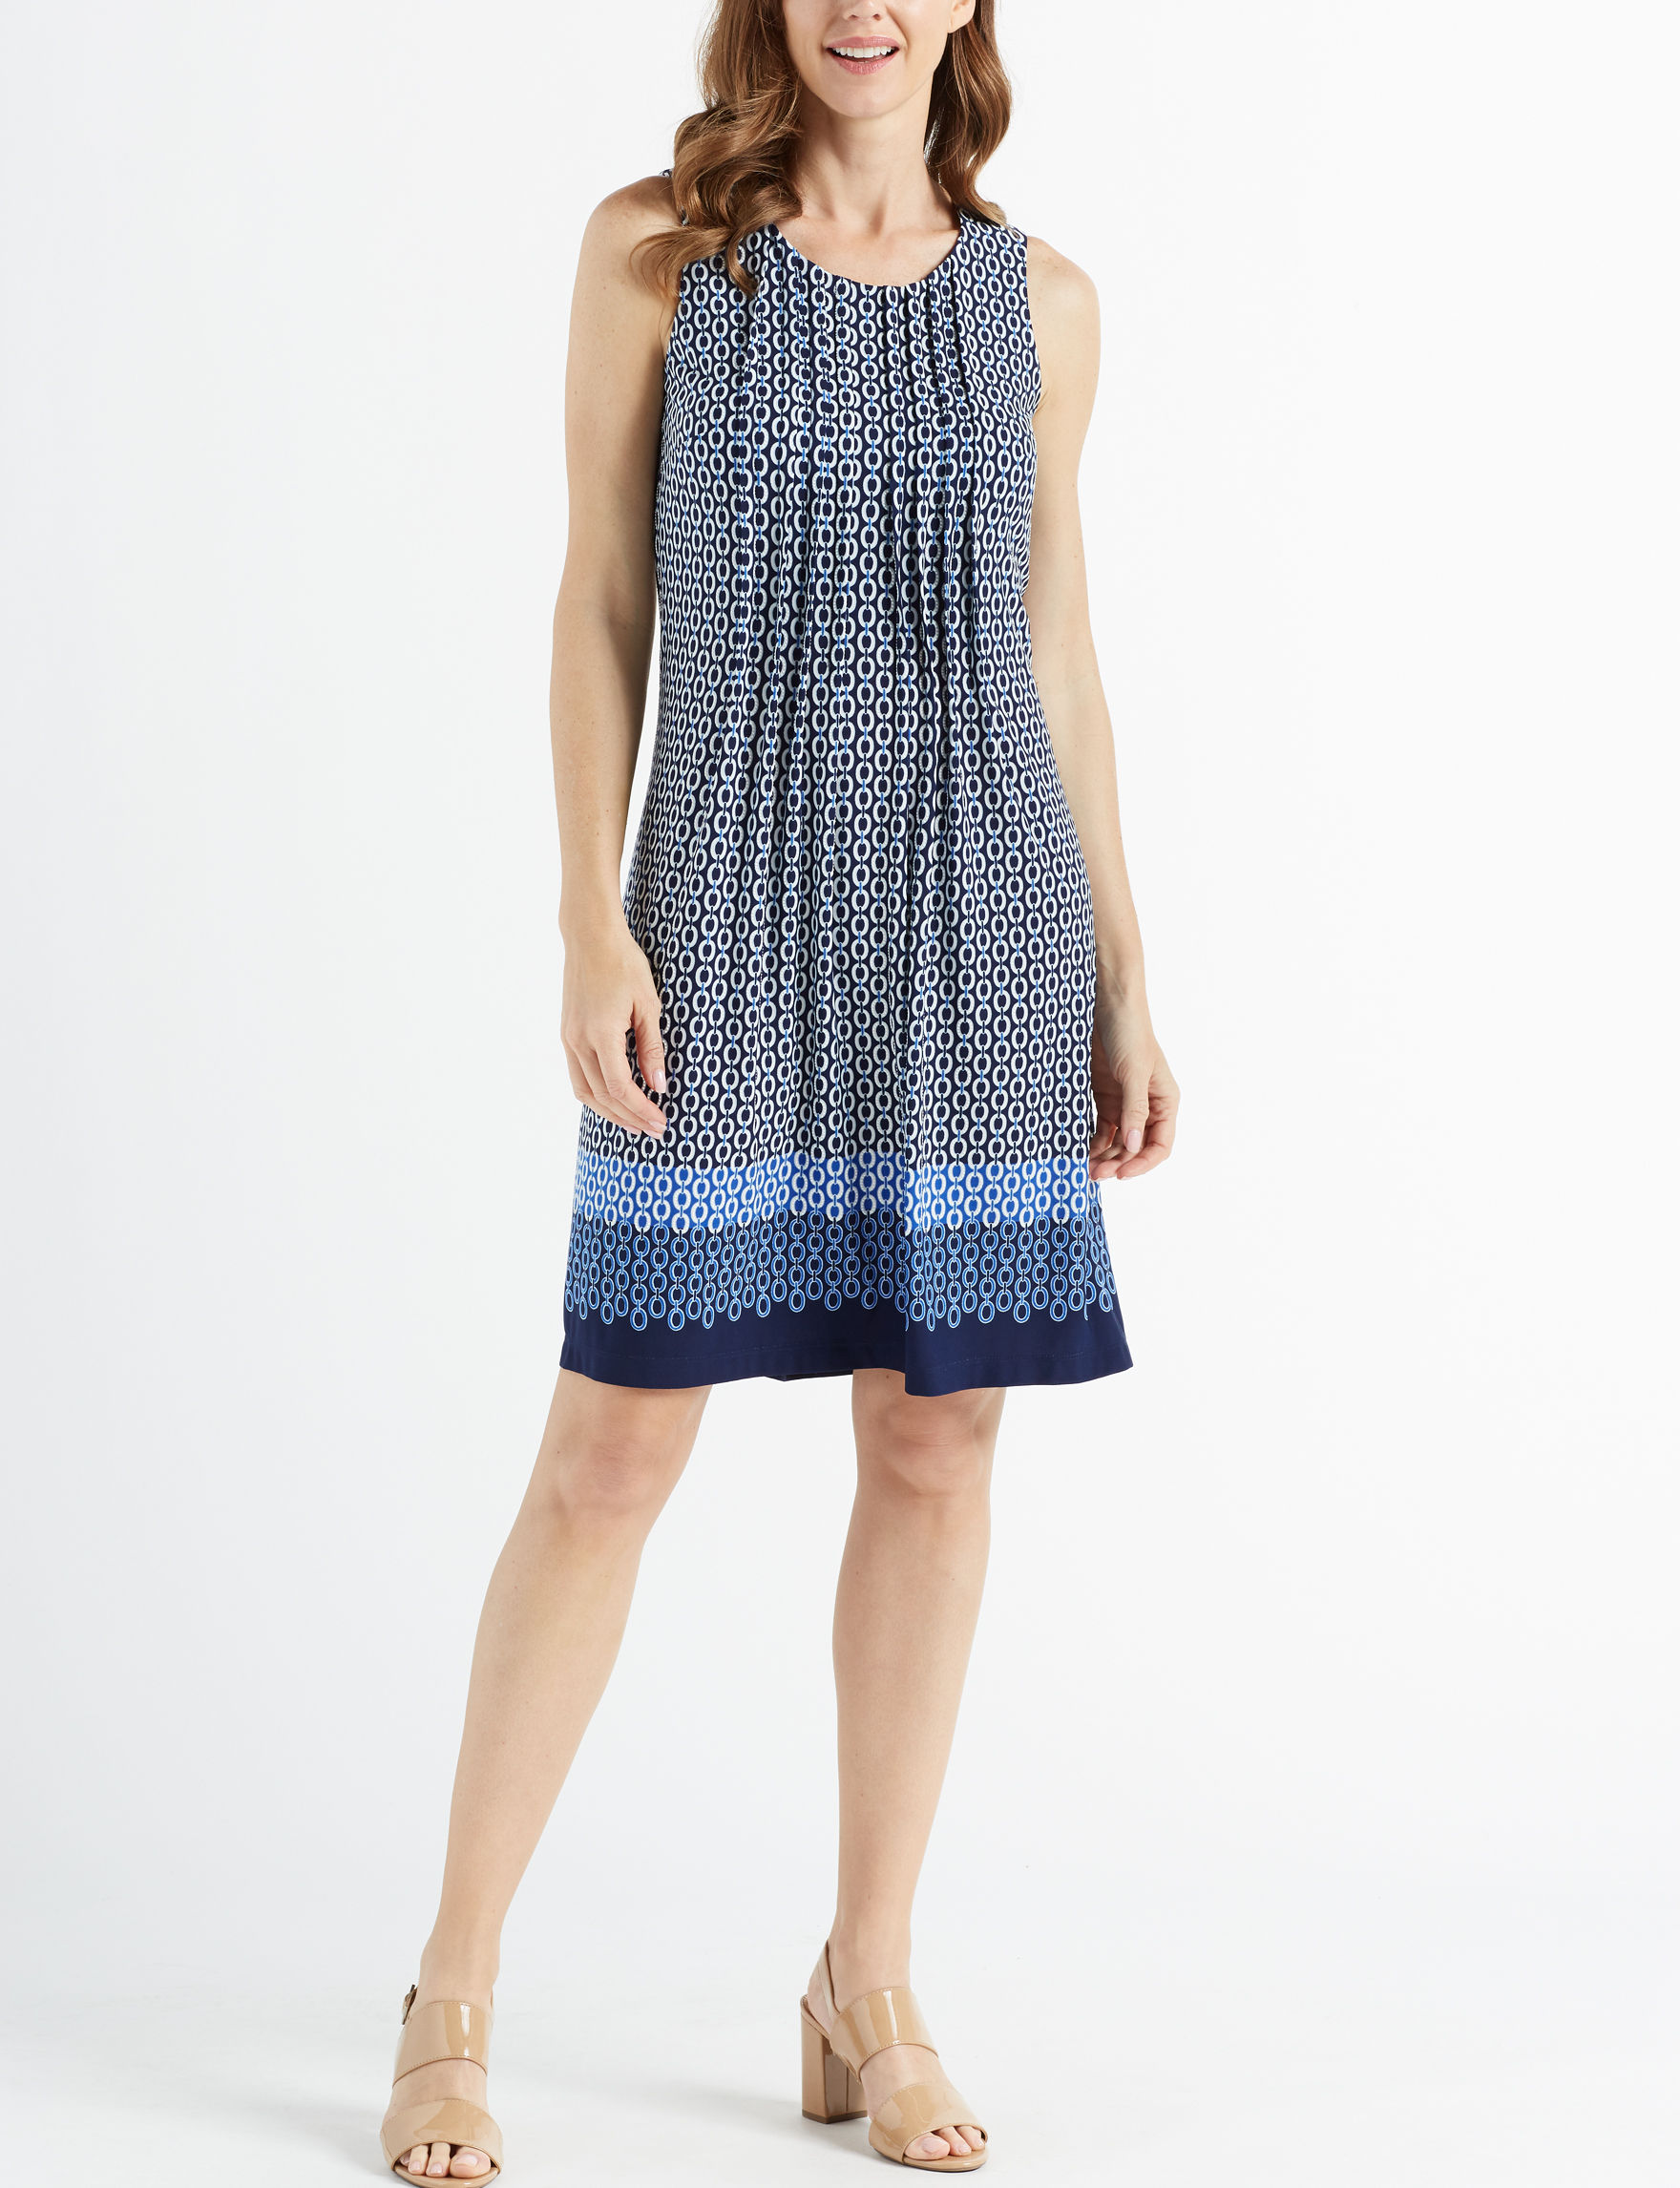 Perceptions Navy / White Everyday & Casual Shift Dresses